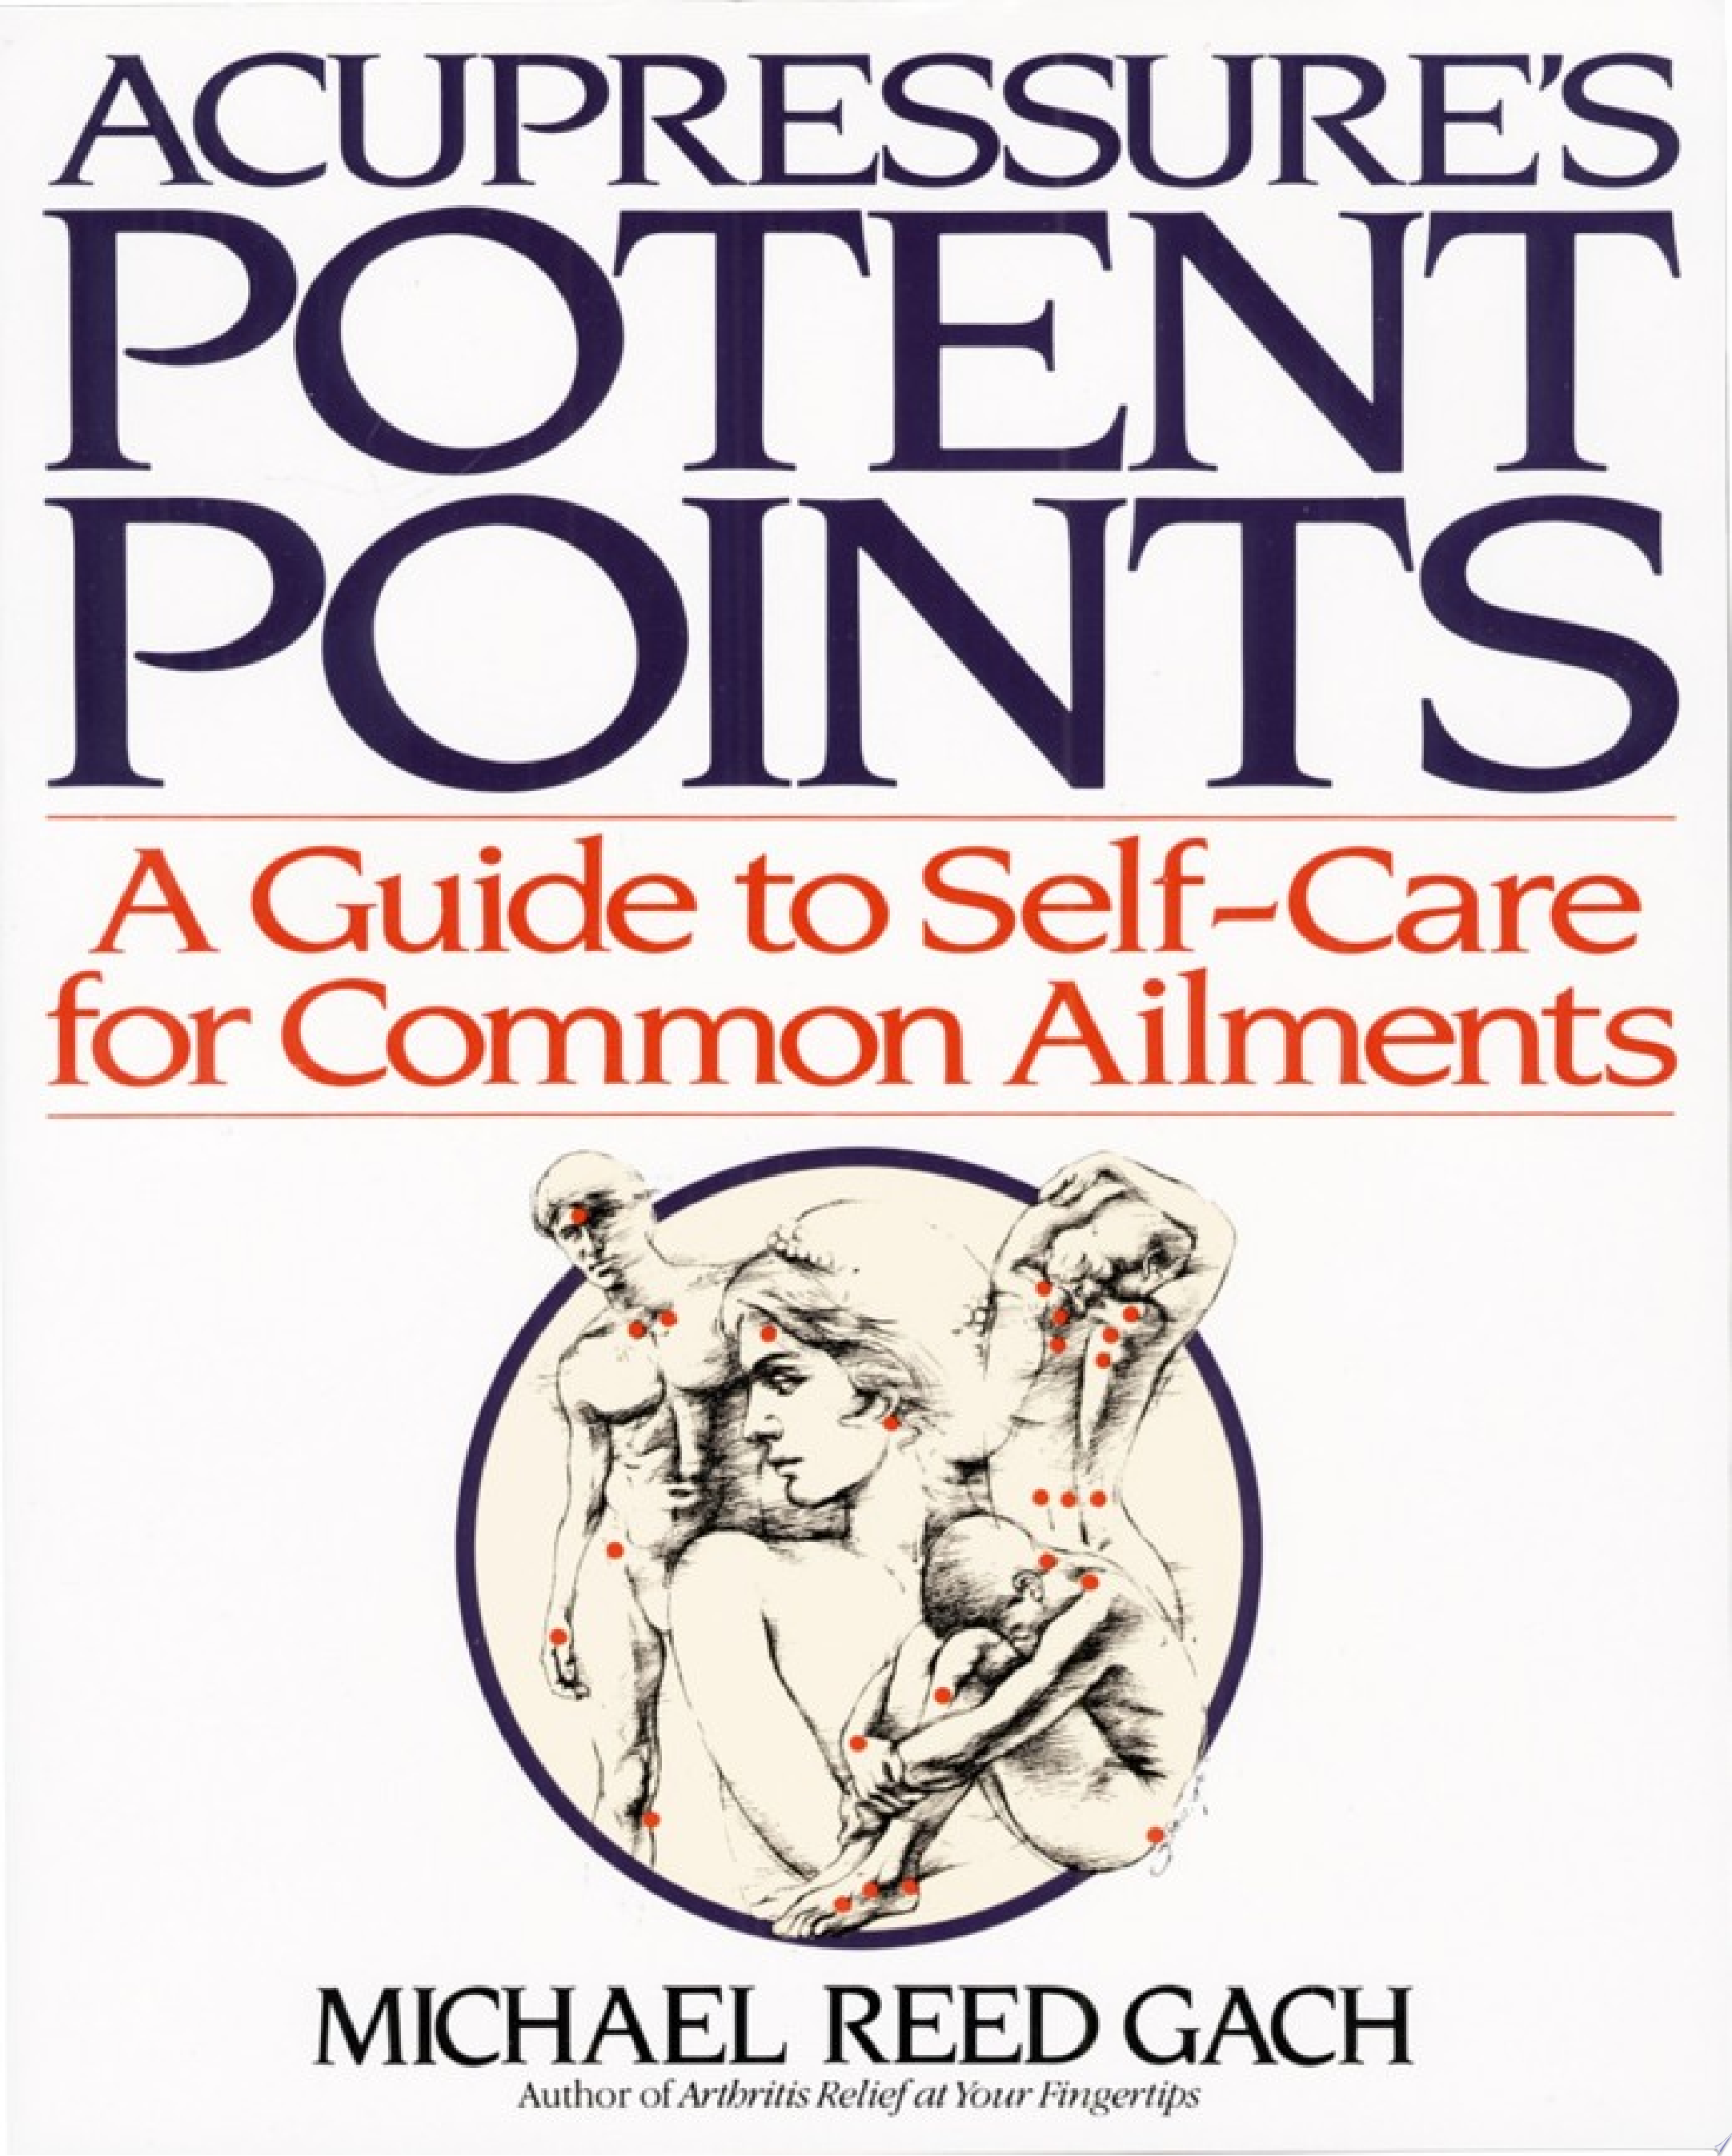 Acupressure s Potent Points